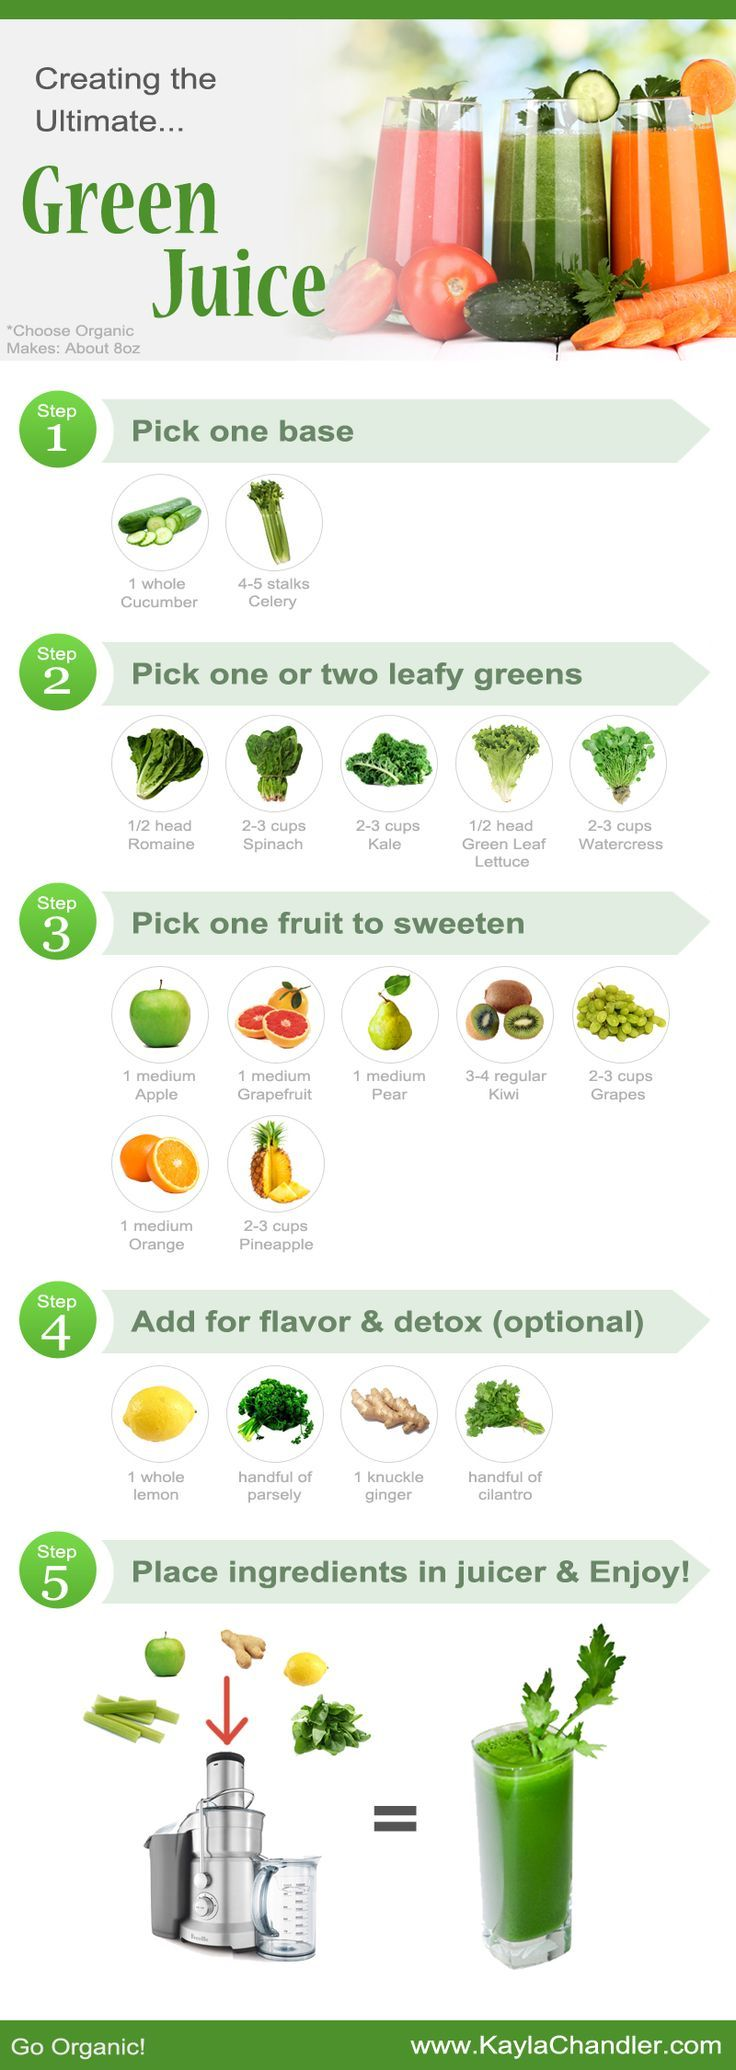 Easy guide to the ultimate green juice... Great for an easy reference!